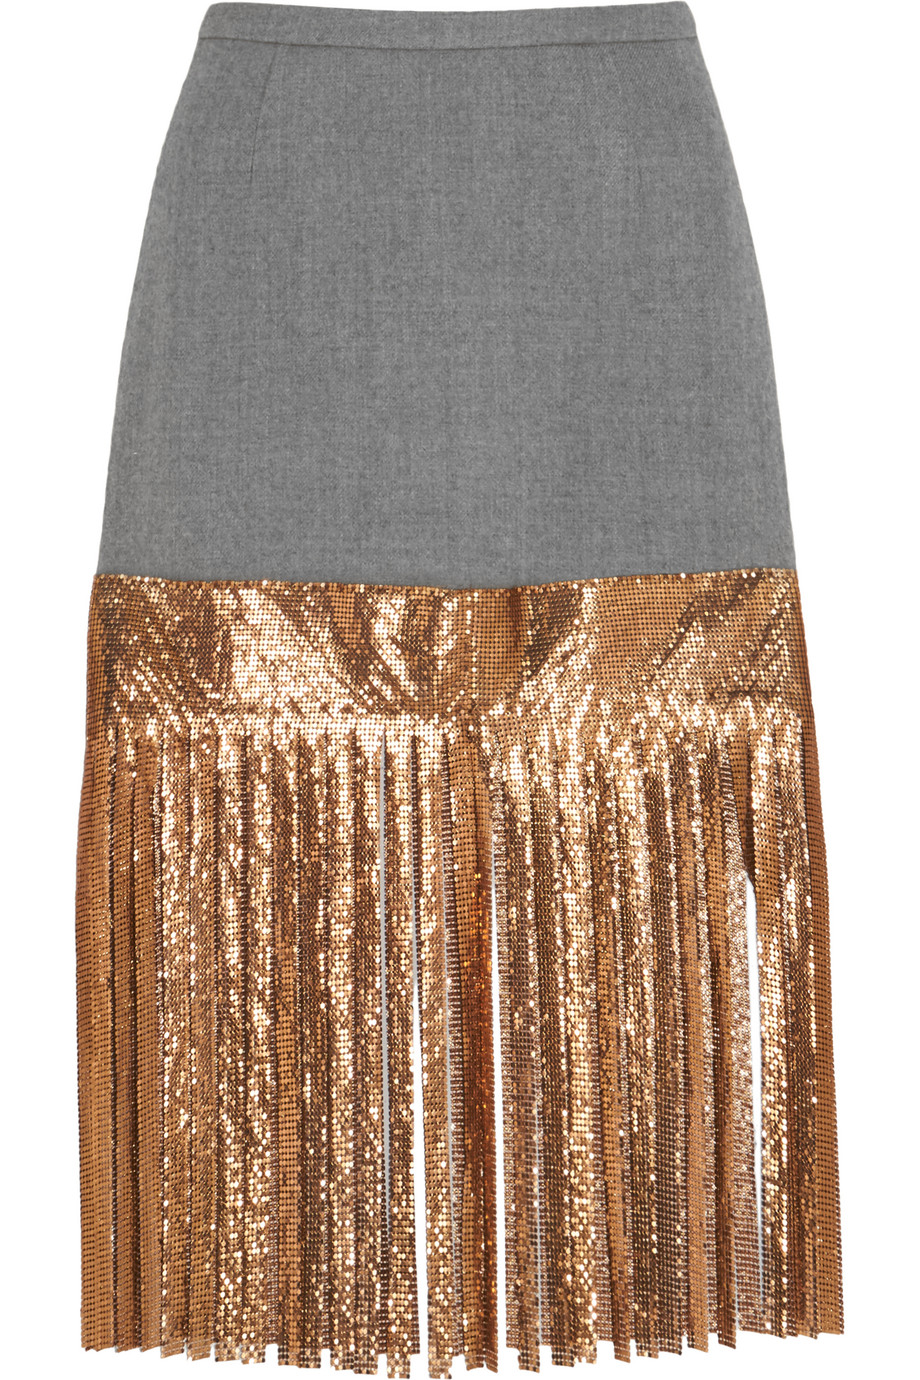 J.Crew Wool and Metallic Chainmail Skirt, Gold, Women's, Size: 0